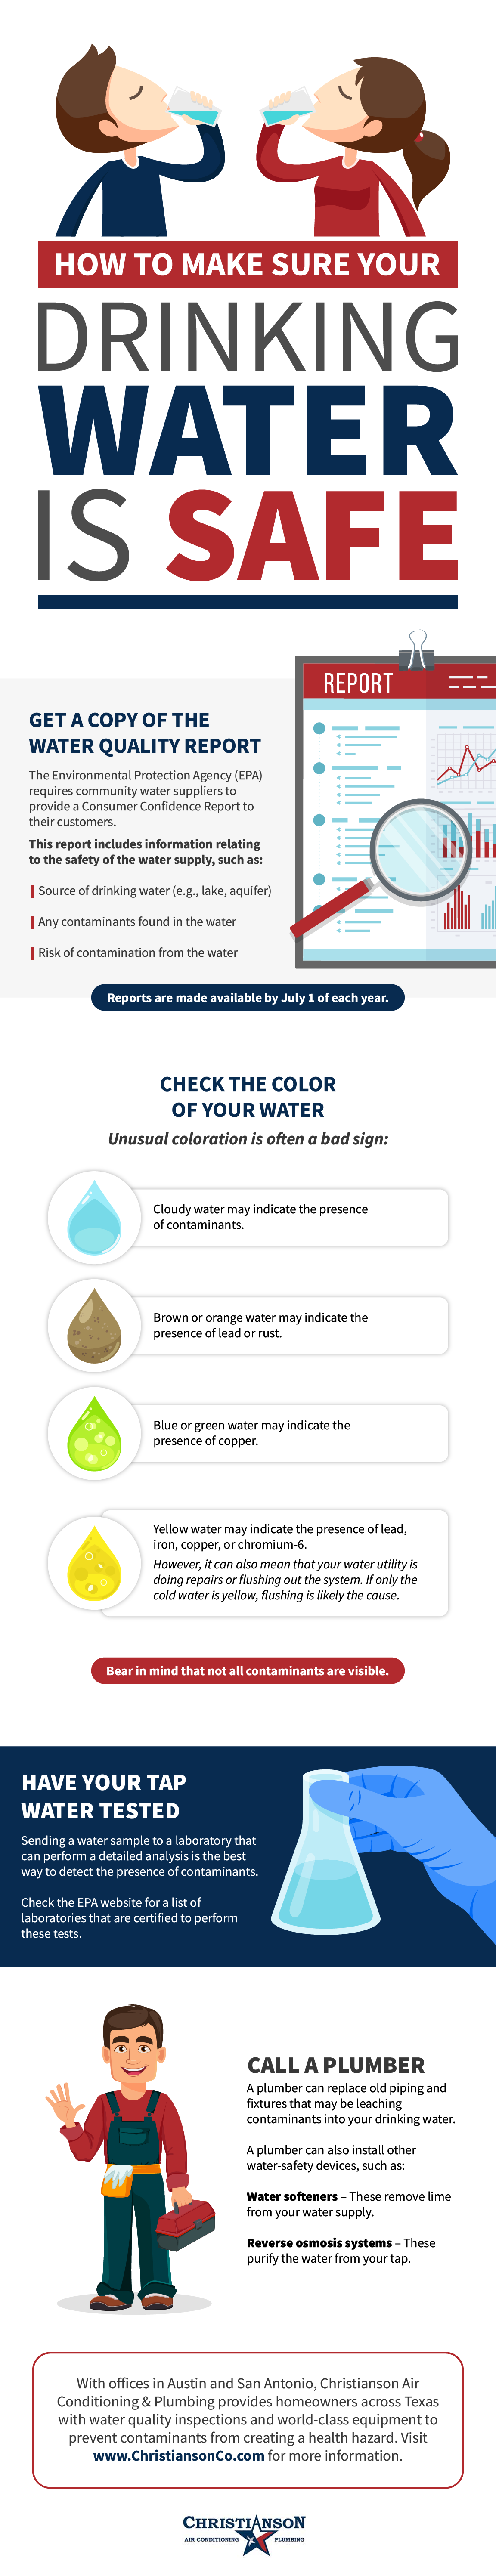 How to Make Sure Your Drinking Water Is Safe Infographic